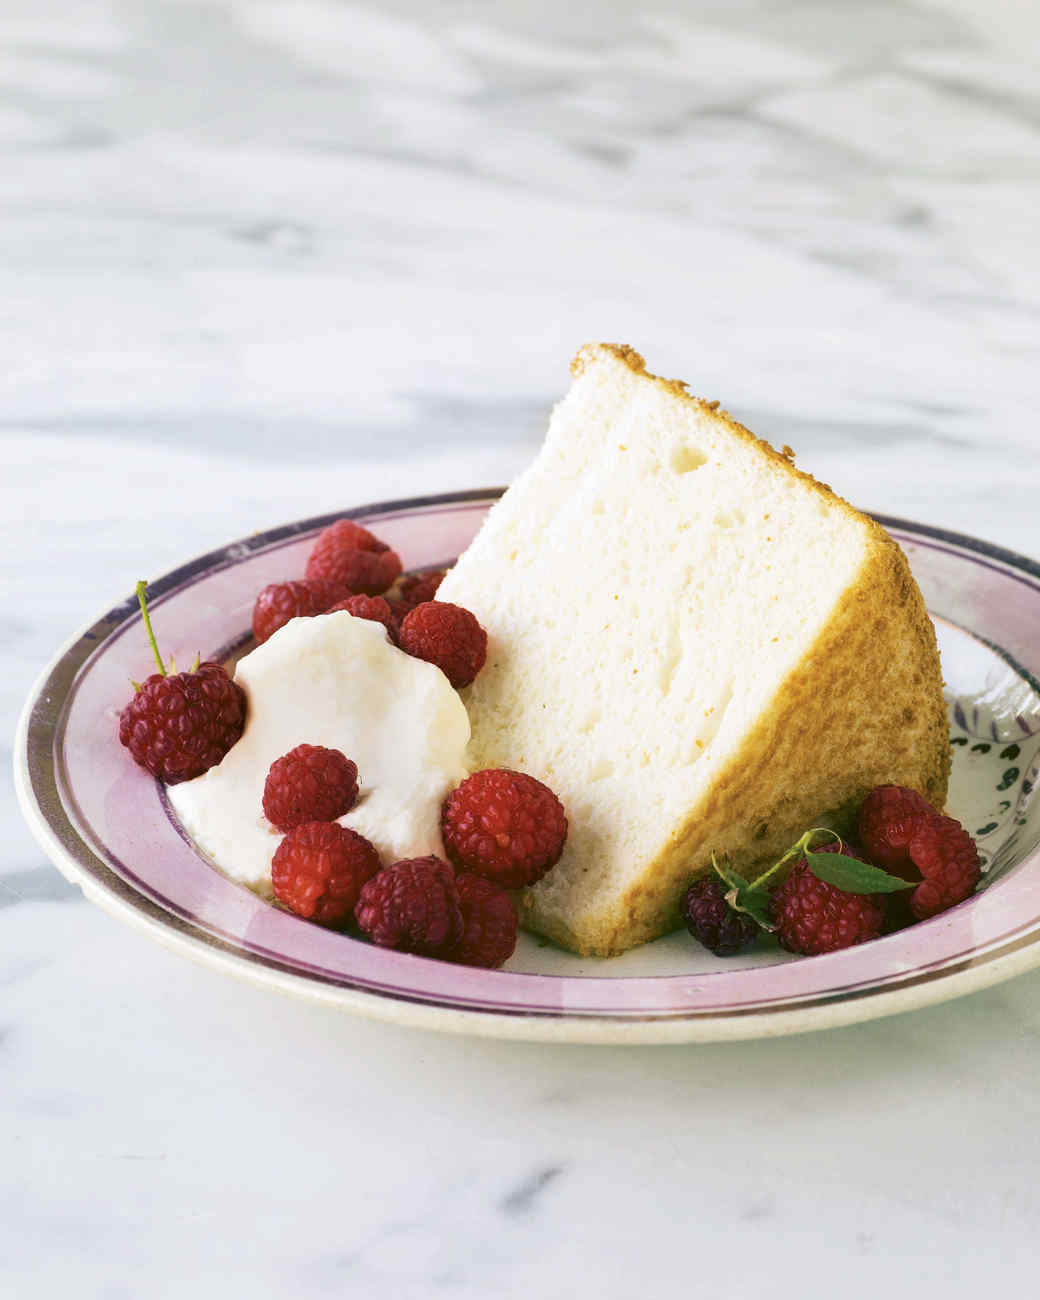 mb_1006_angel_food_cake.jpg